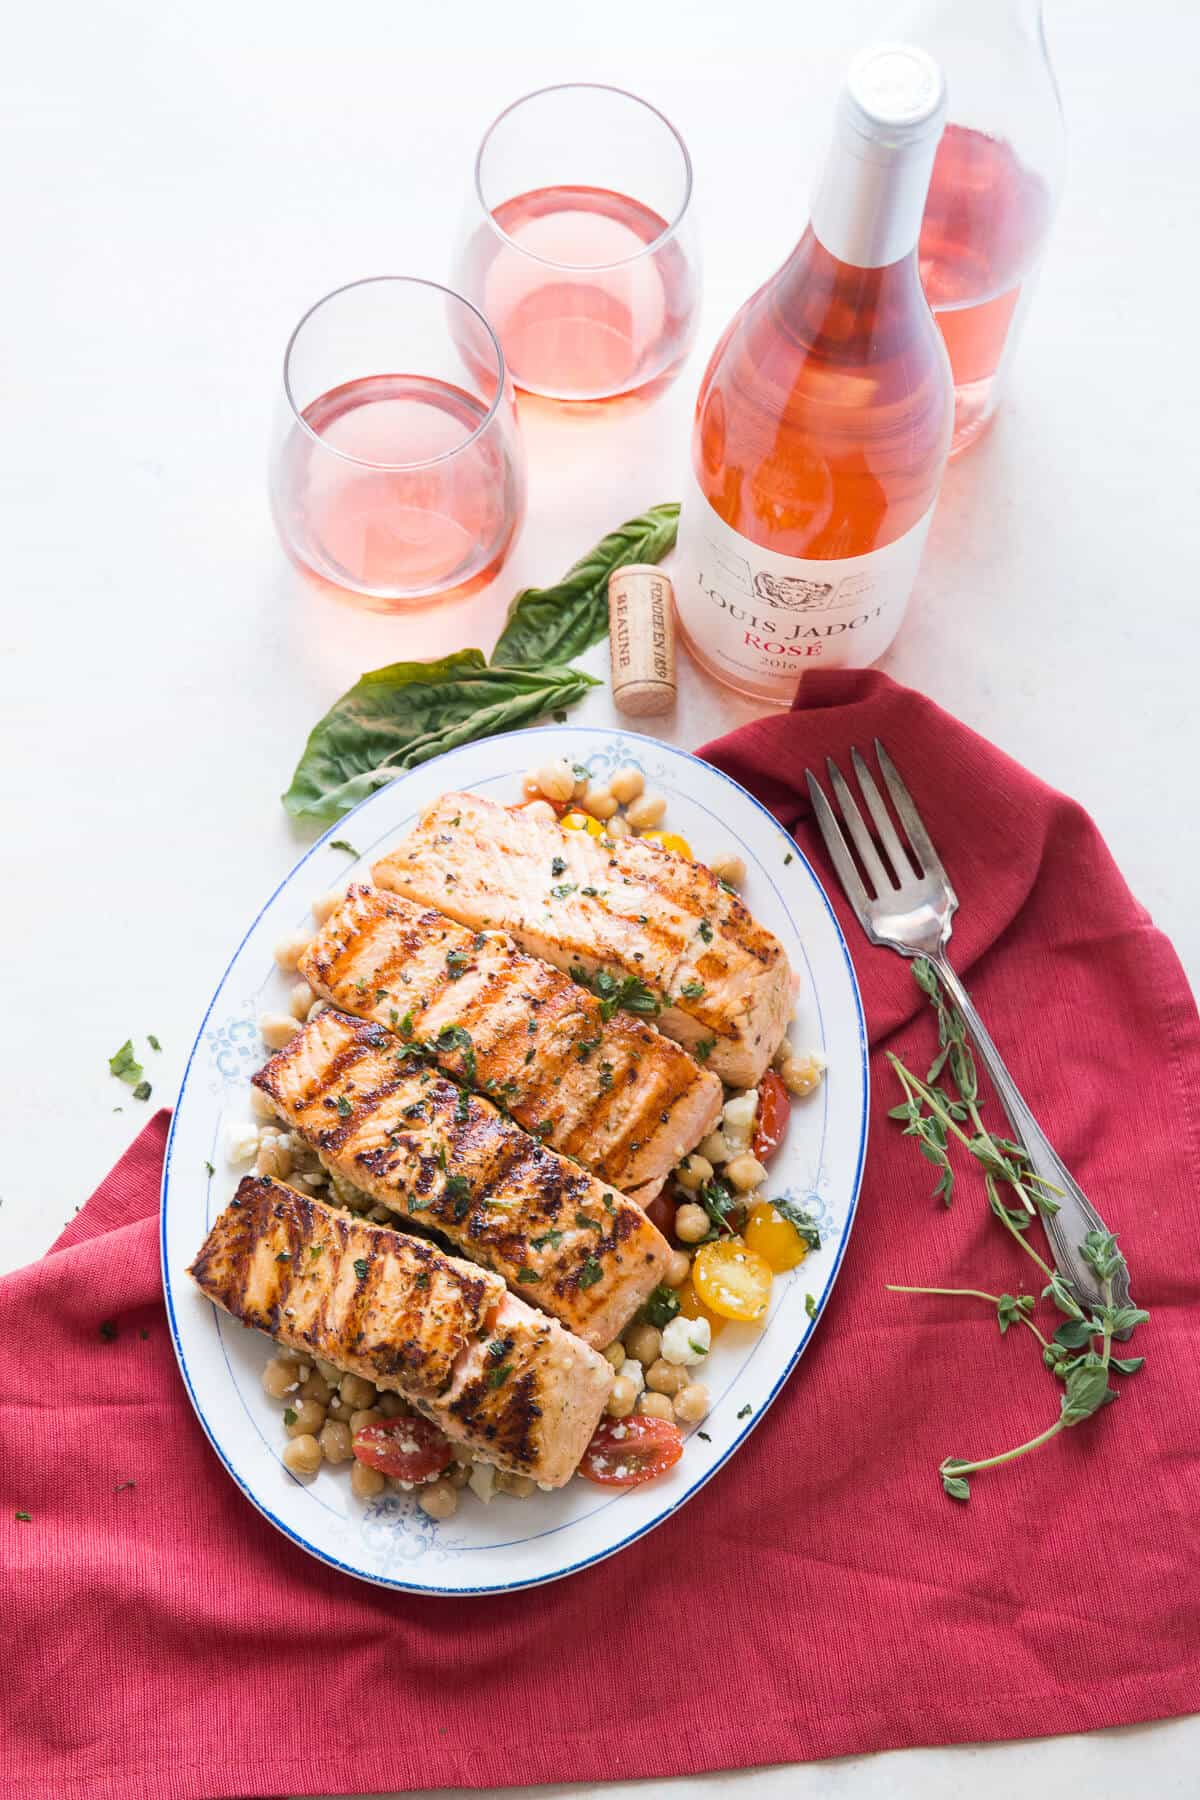 This easy grilled salmon recipe ha a little Mediterranean flair! The flavor is amazing!